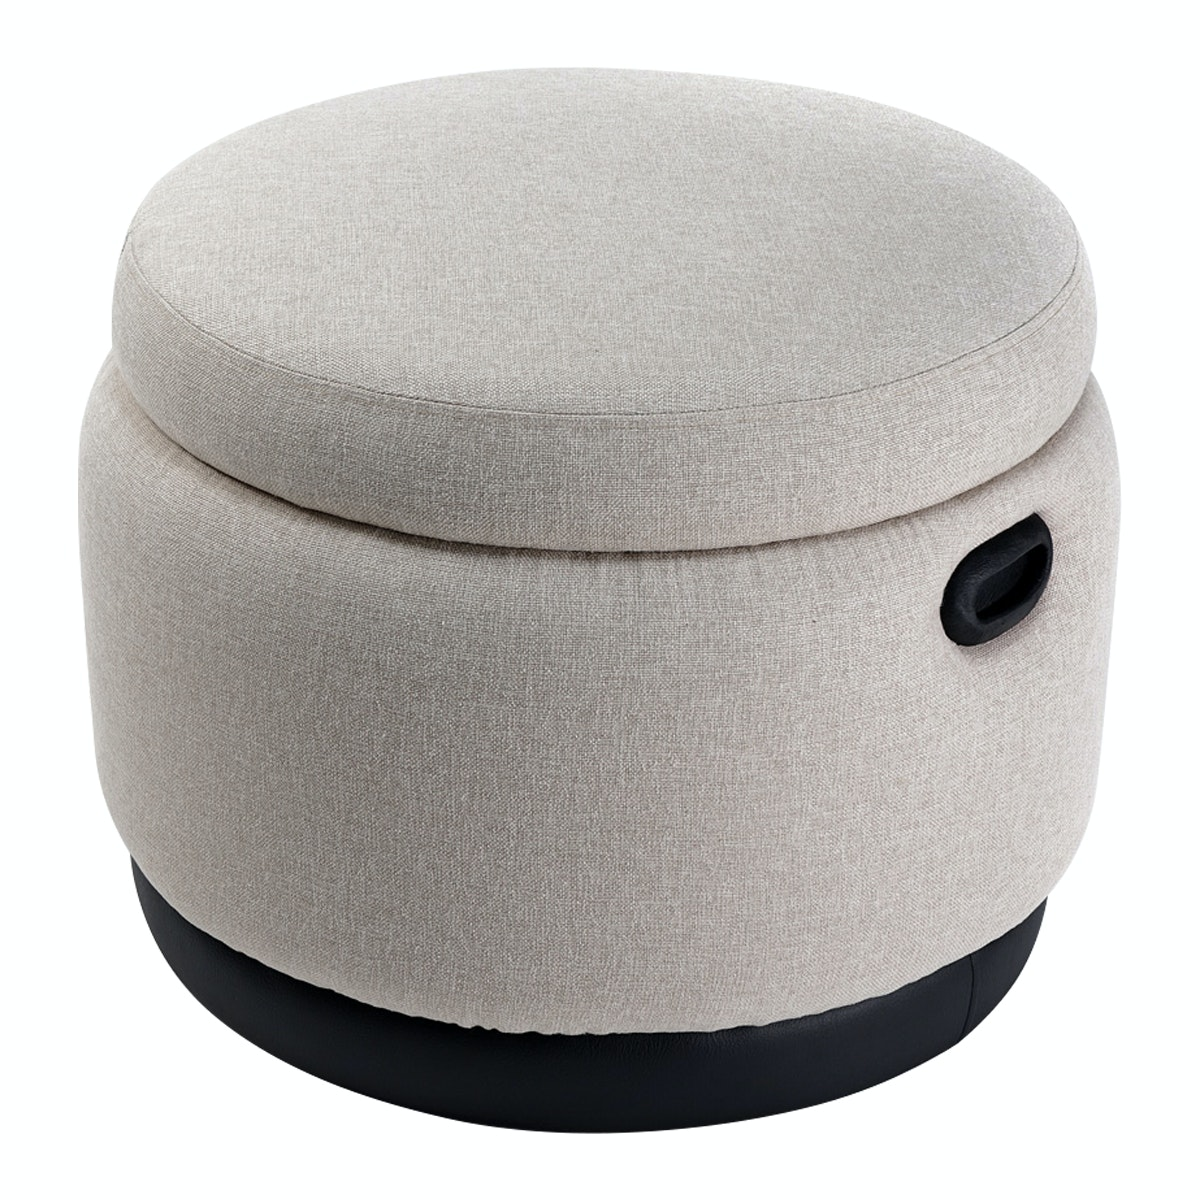 Hago Furniture Ottoman Storage Round Custard